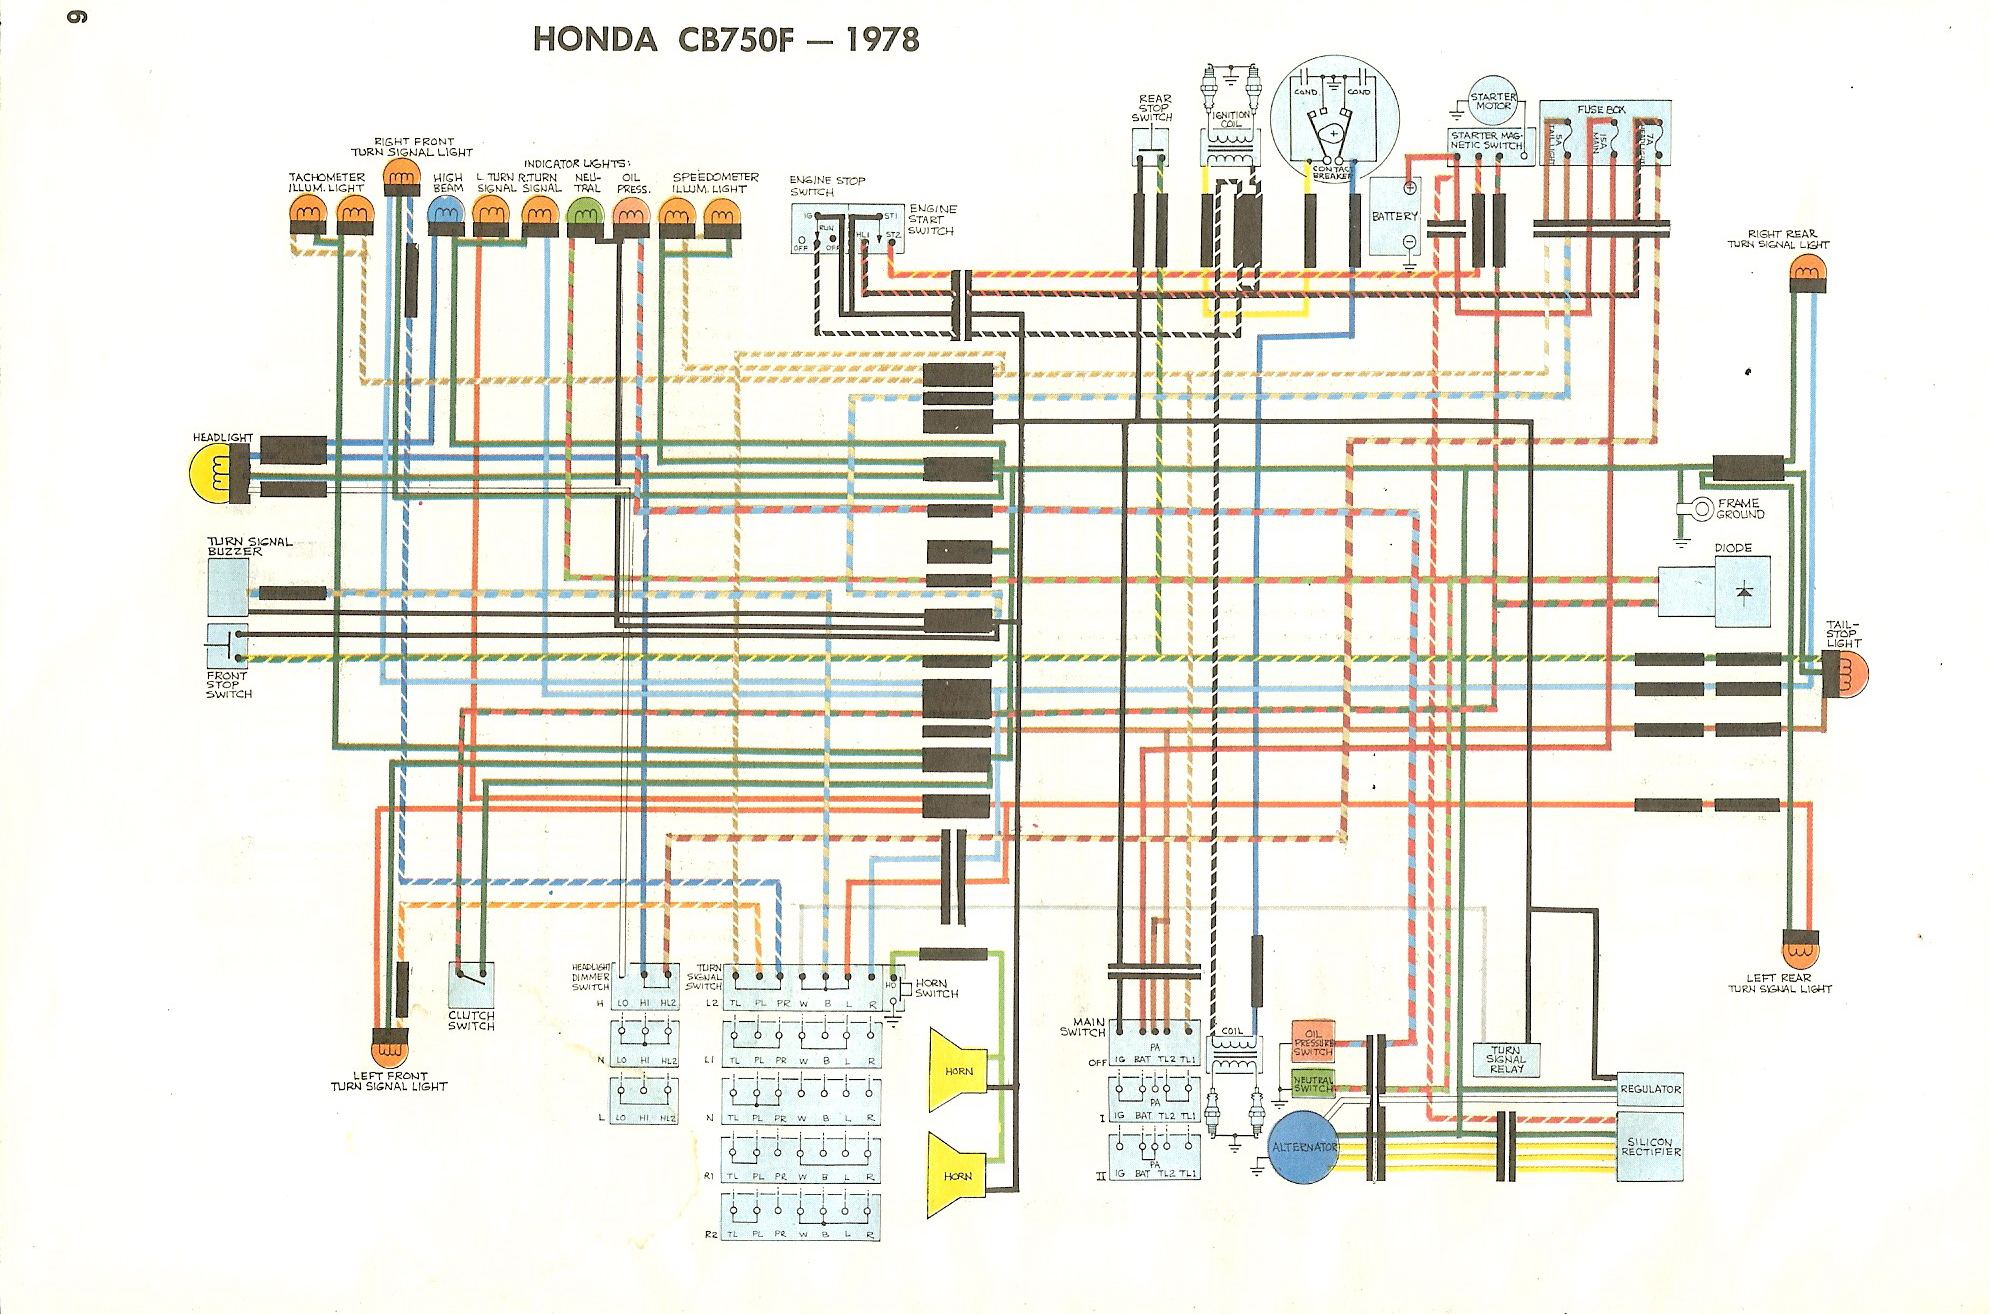 Cb750 Wiring Diagram Page 3 And Schematics Honda Ca200 Cb750f Rh Manuals Sohc4 Net 1975 1980